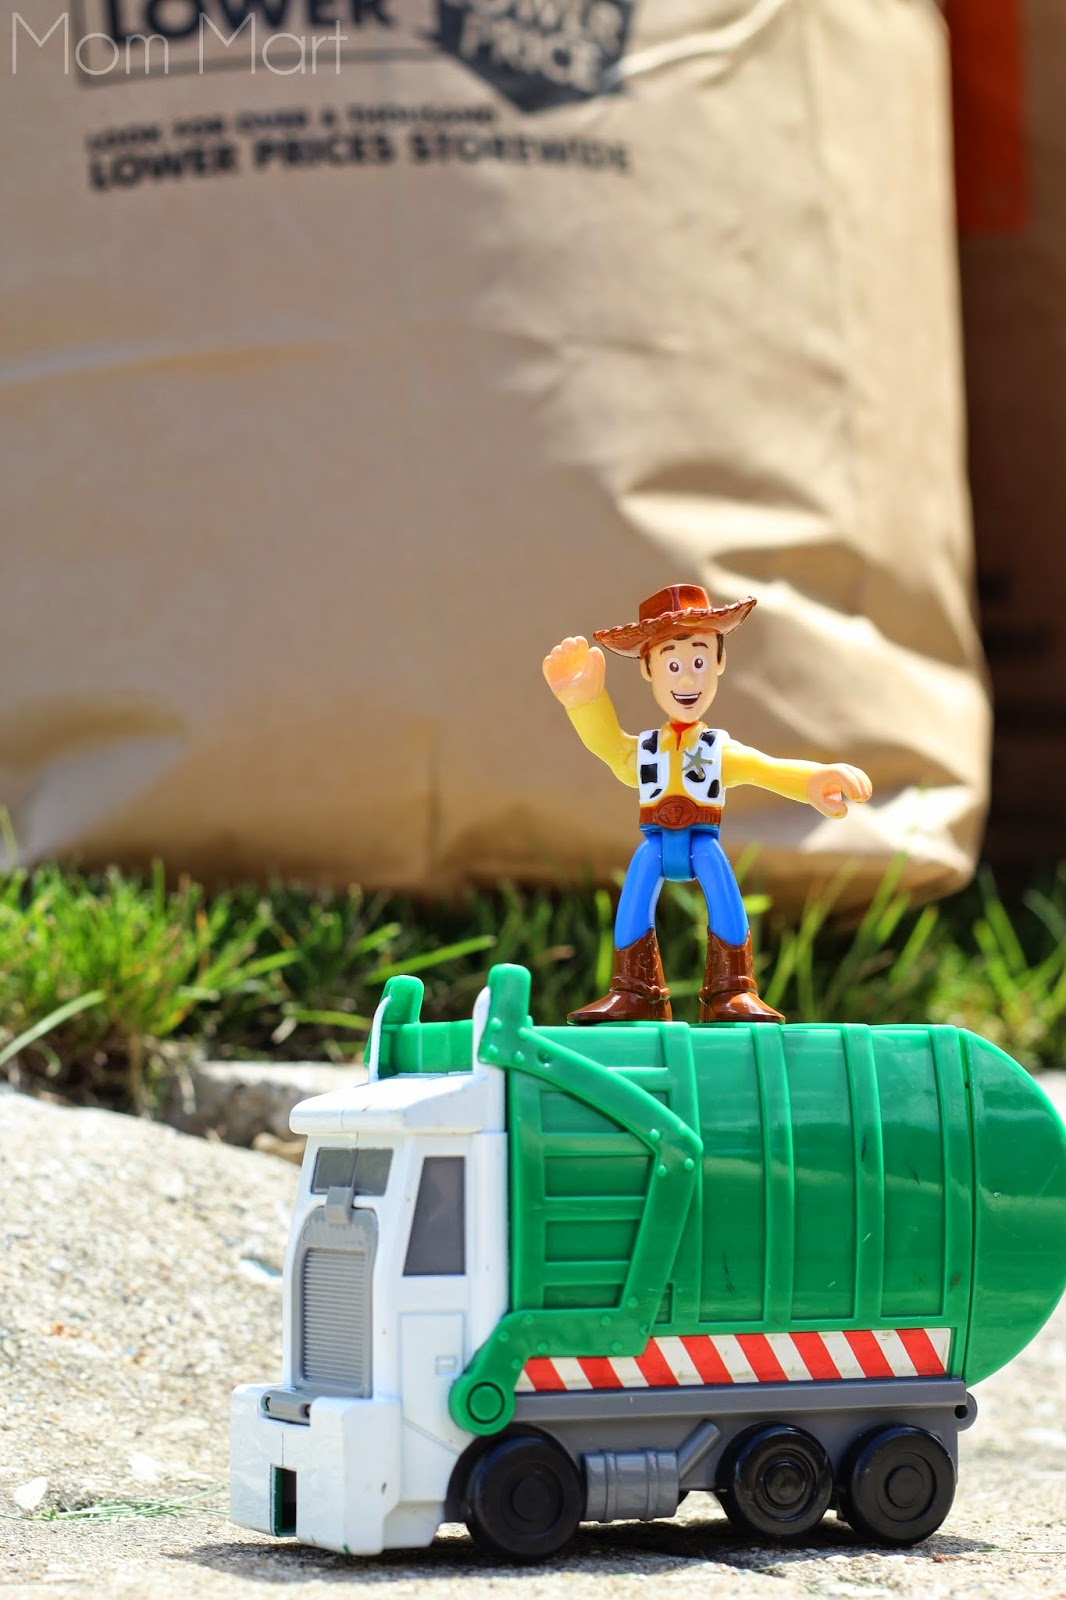 A few of our favorite toys #ToyStoryToys #Disney #FisherPrice #PlayTime #Woody